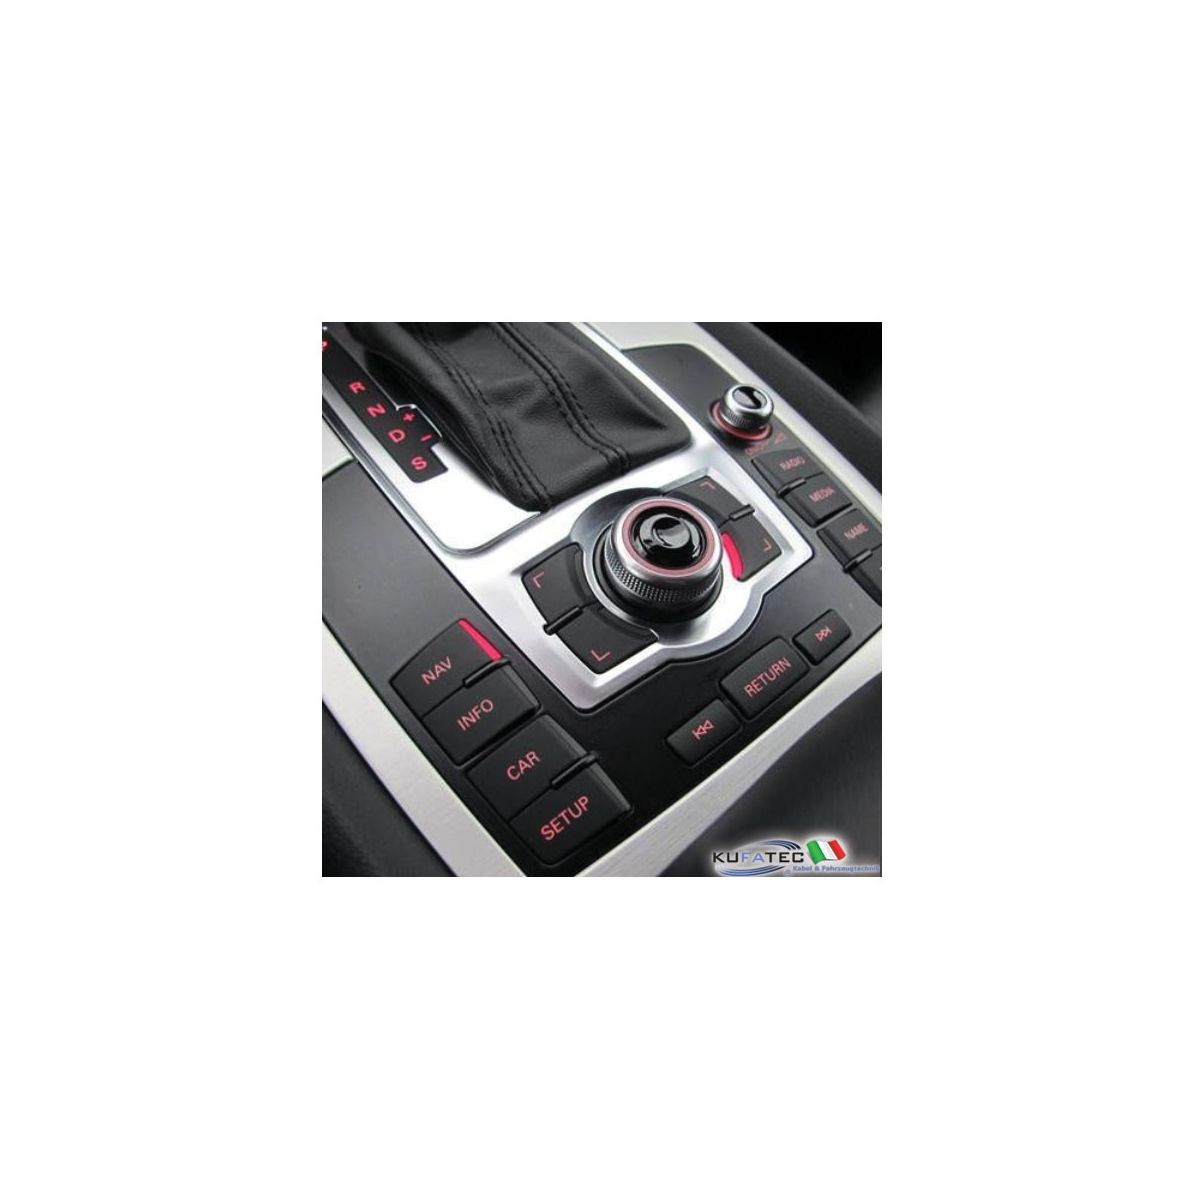 Audi mmi 3g Hdd Navigation plus Dvd Europe version 2014